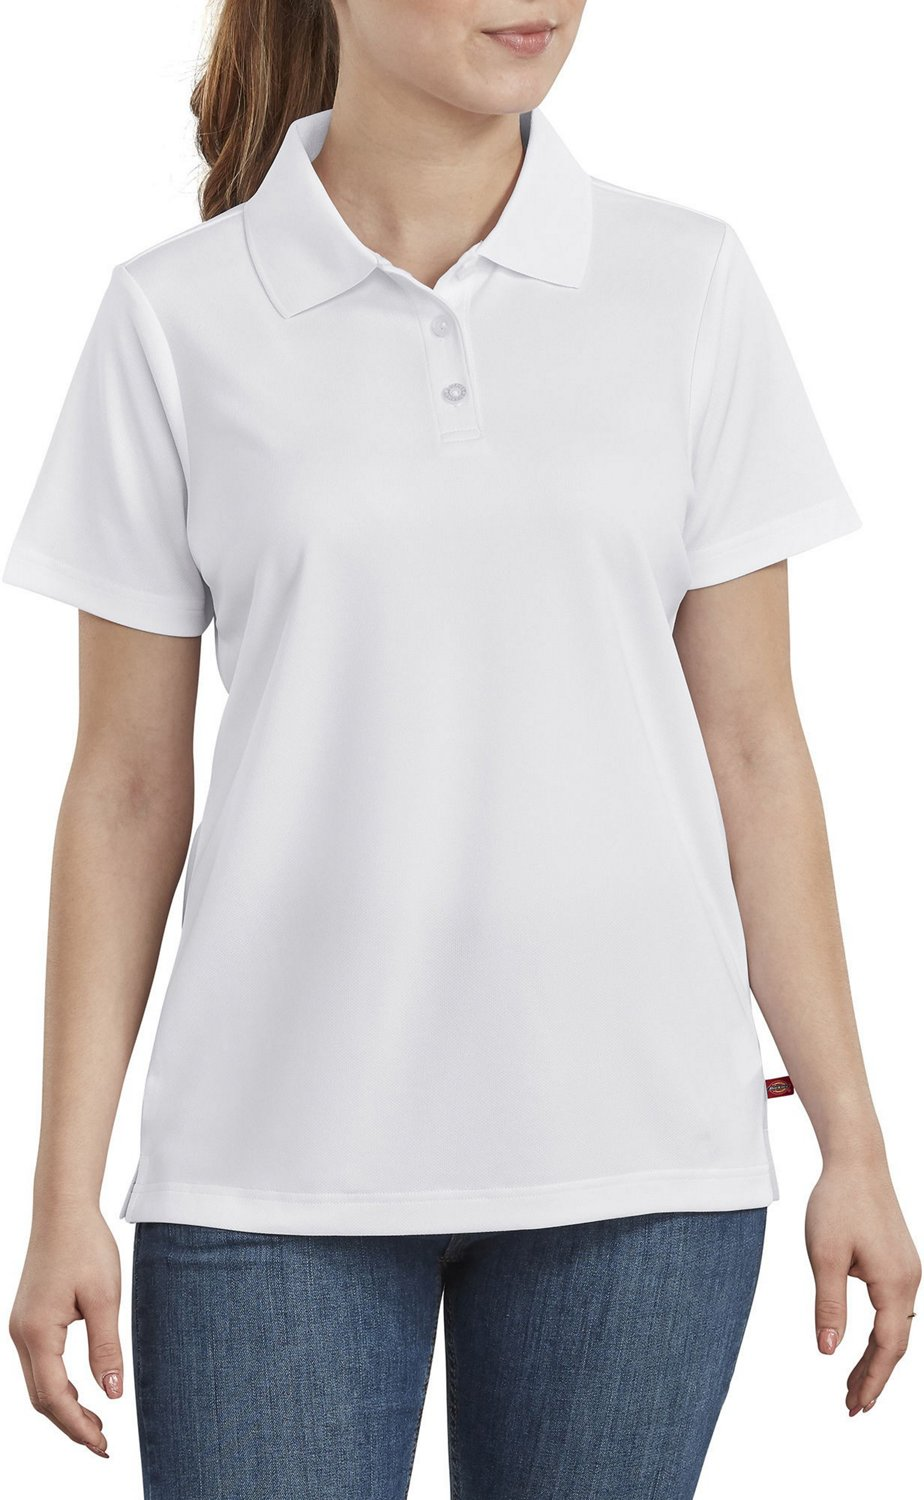 ad1f87e6352 Display product reviews for Dickies Women's Performance Short Sleeve Polo